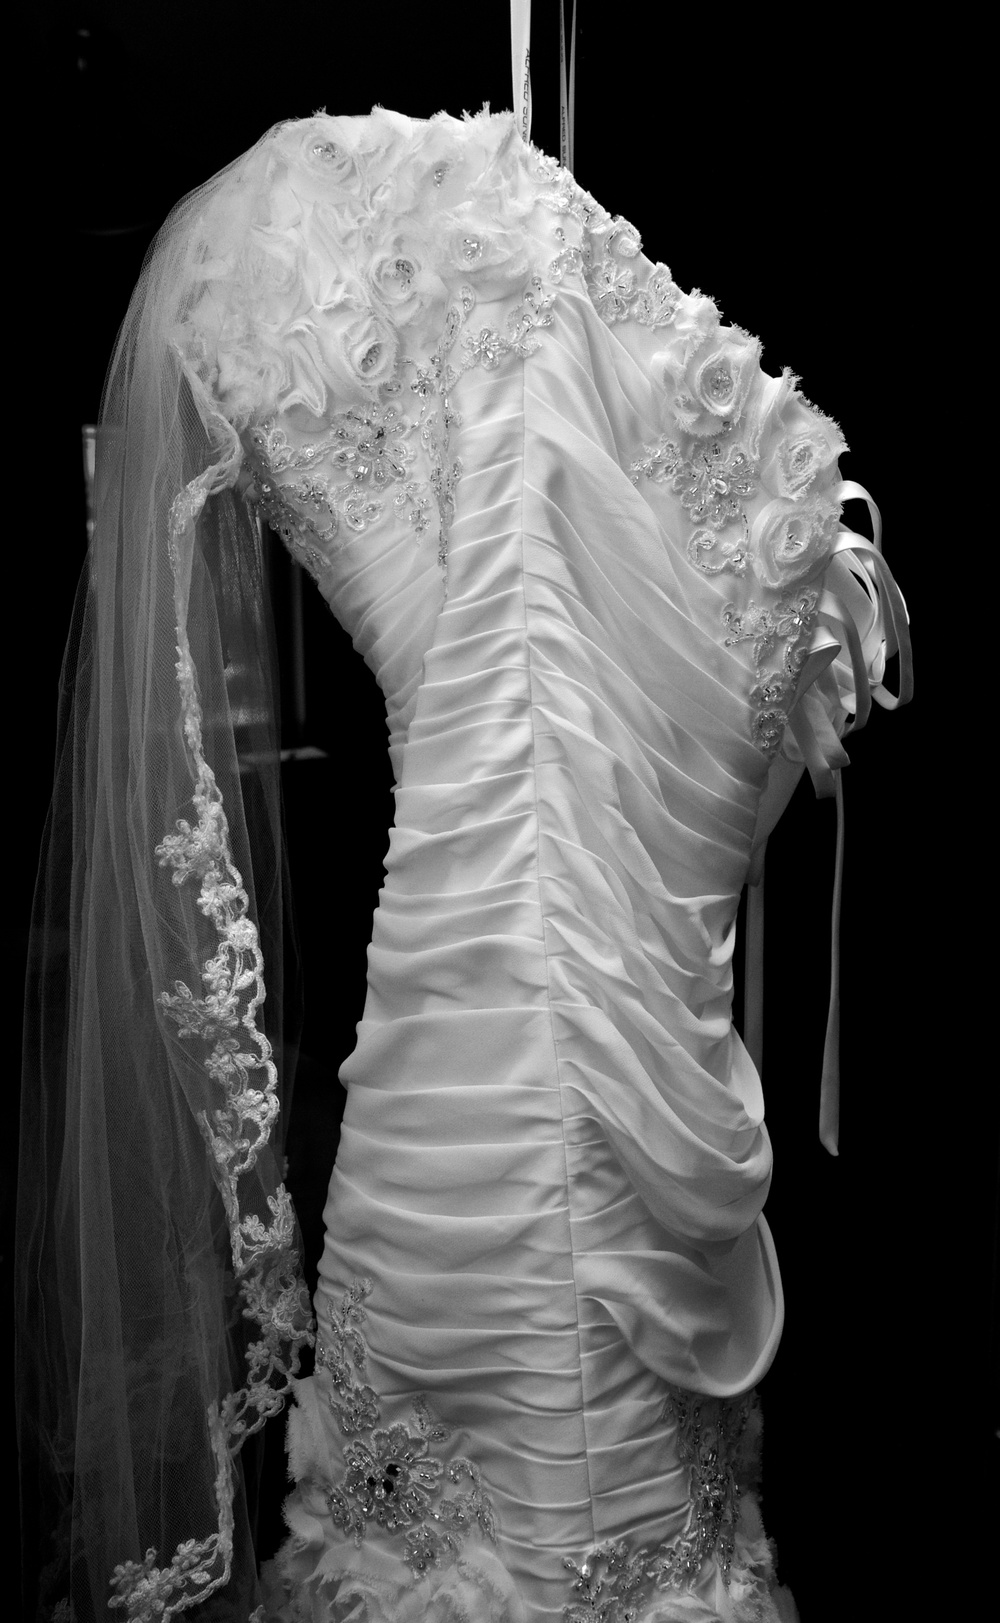 2013-11-09 at 07-17-20 Black & White, Curves, Dress, Lace, Veil, Wedding.jpg